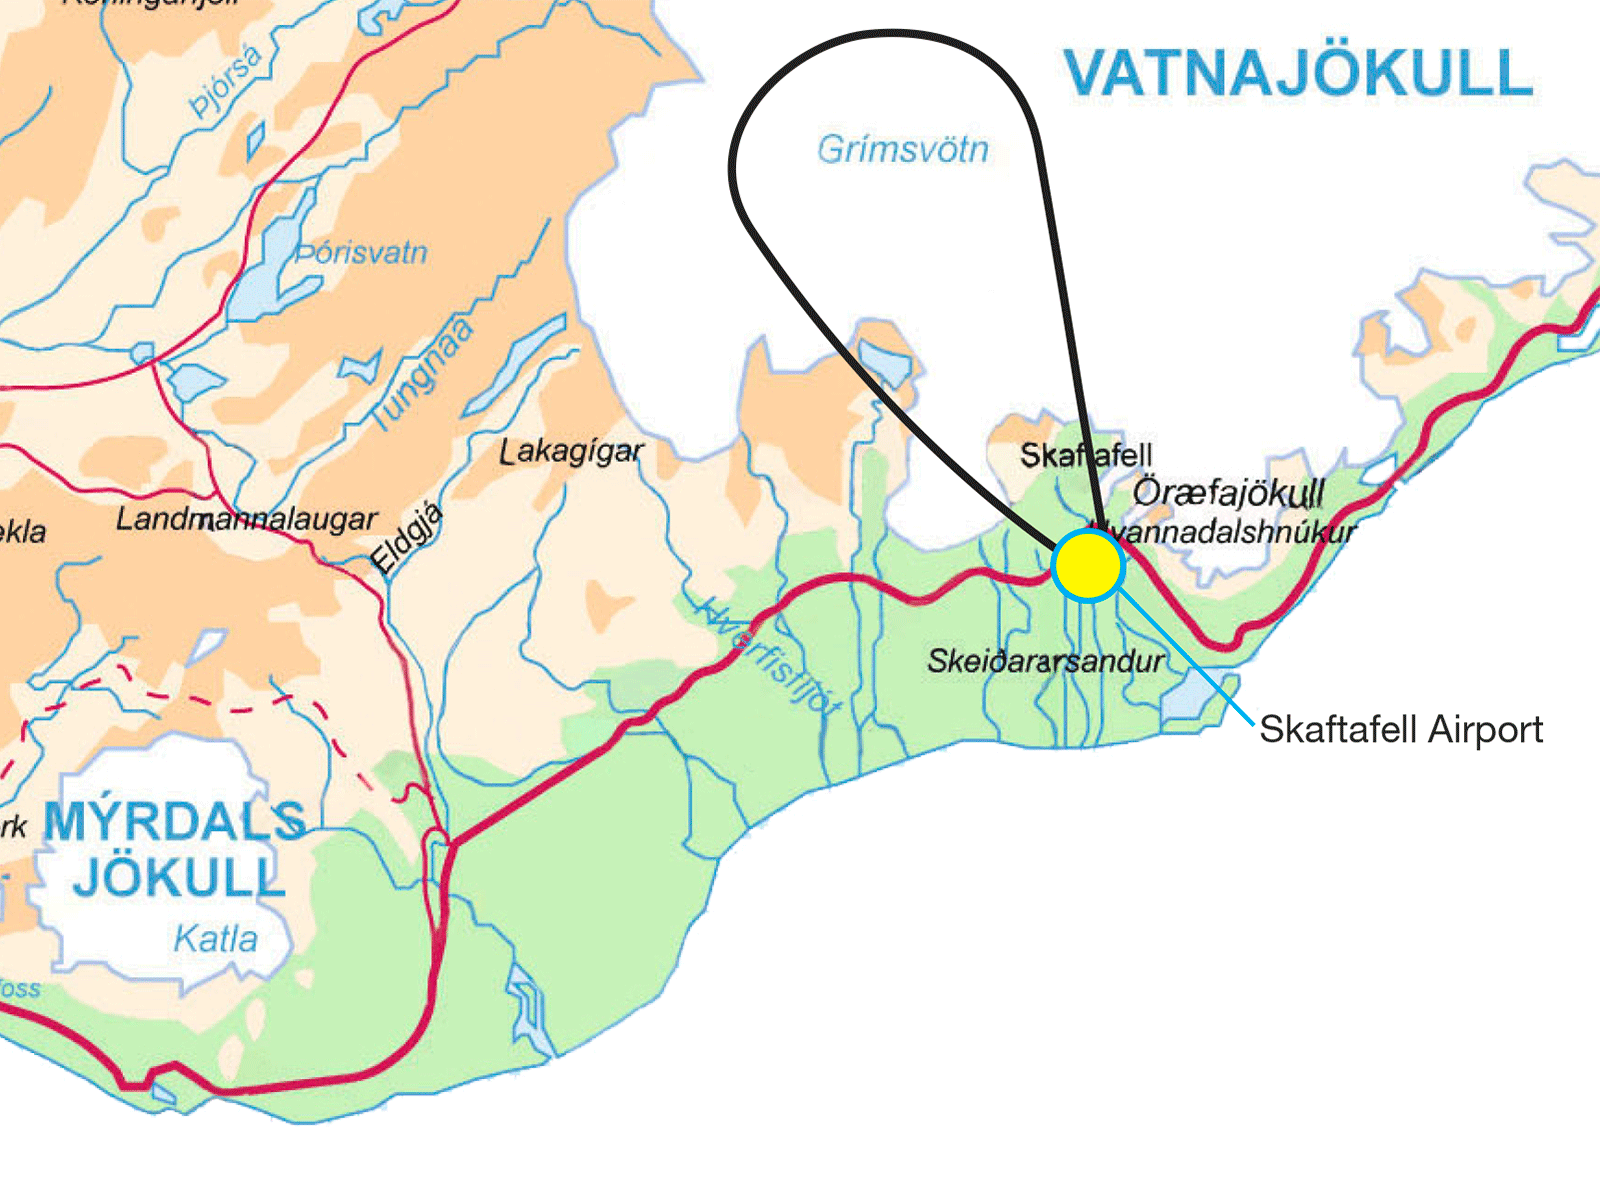 Grimsvotn Eruption Site Tour route